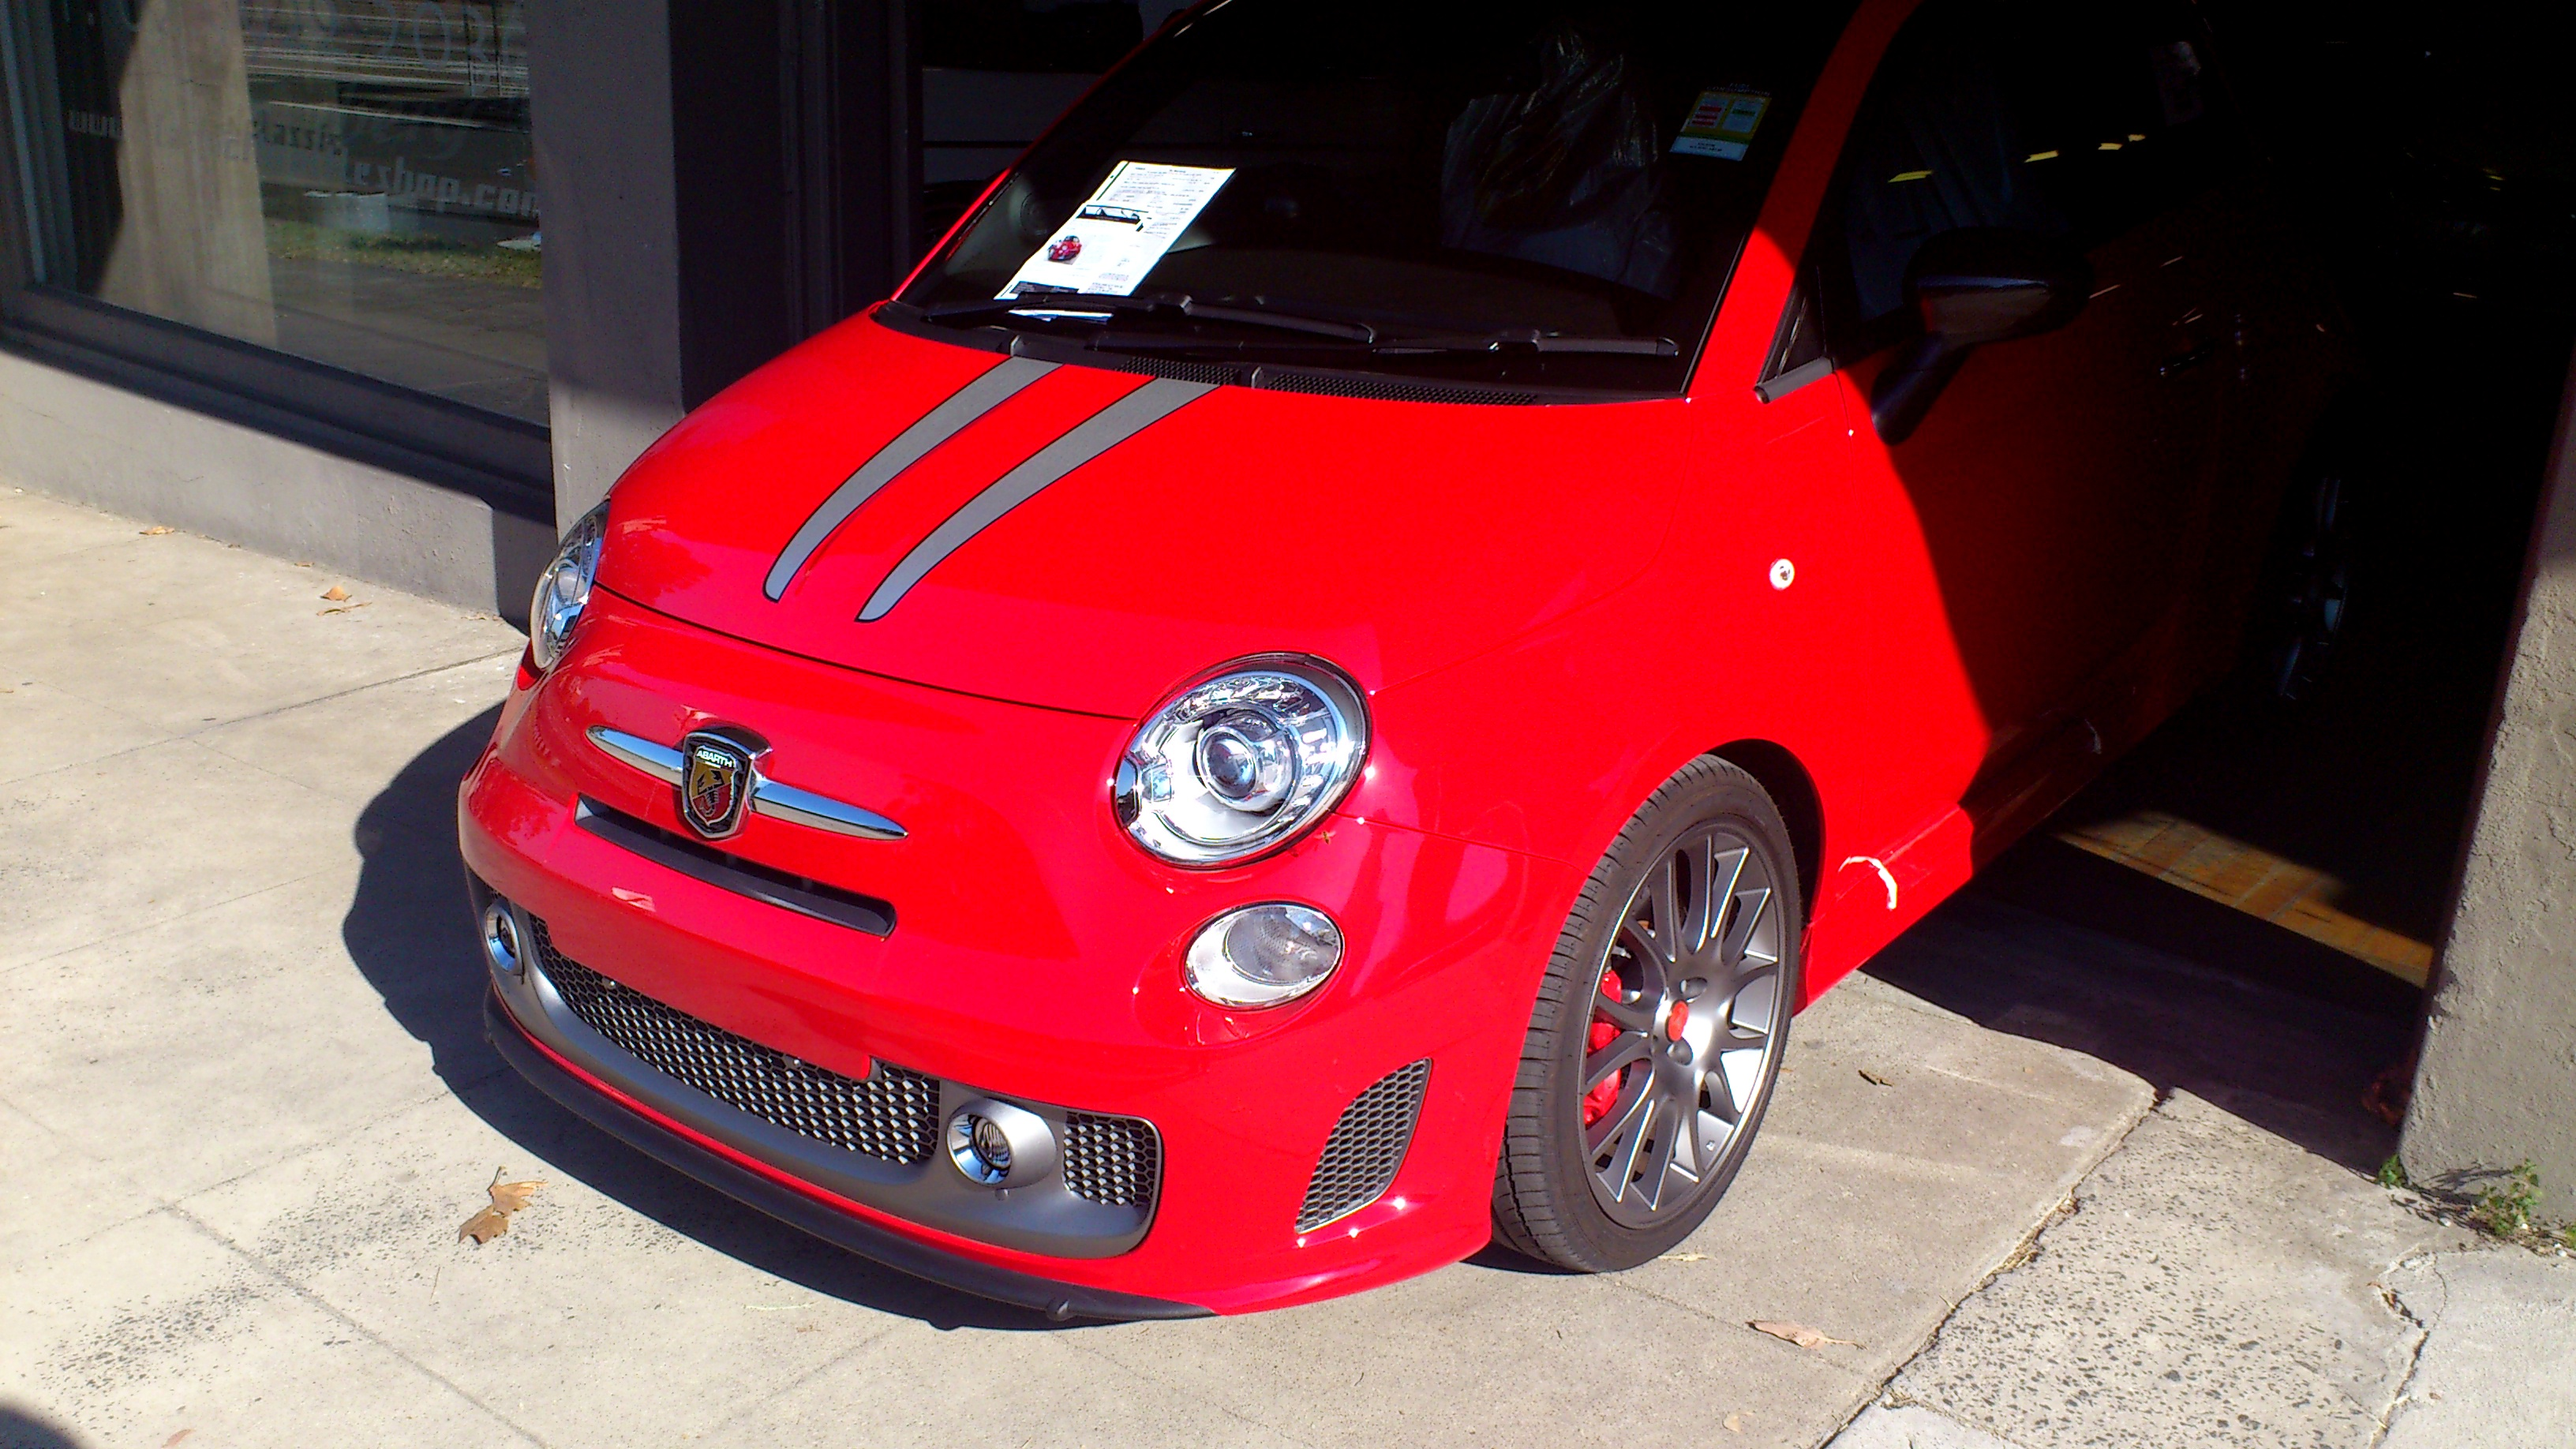 C652526 moreover File Fiat 500 Abarth 695 Tributo Ferrari likewise Whacky Custom Cars For Sale In The U K together with Product product id 130 together with 1994 Mercedes Benz E500 124 For Sale. on fiat 500 for sale